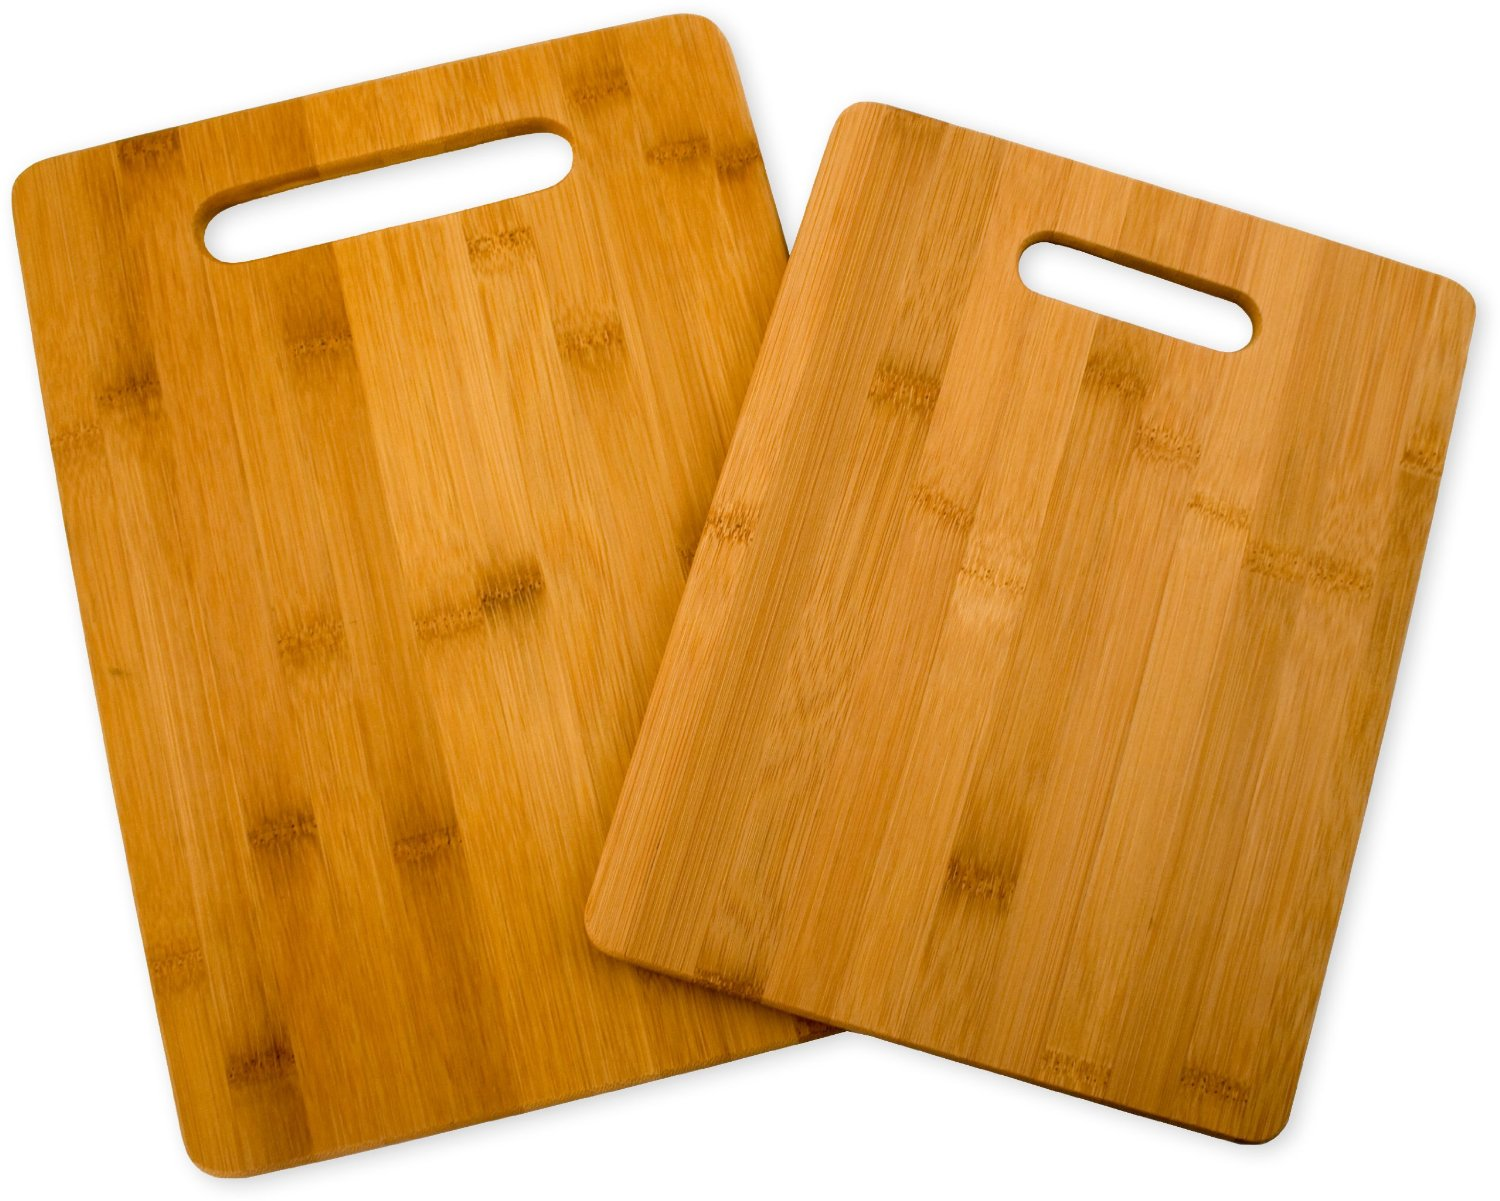 Bamboo Cutting Board Set Only $9.99!